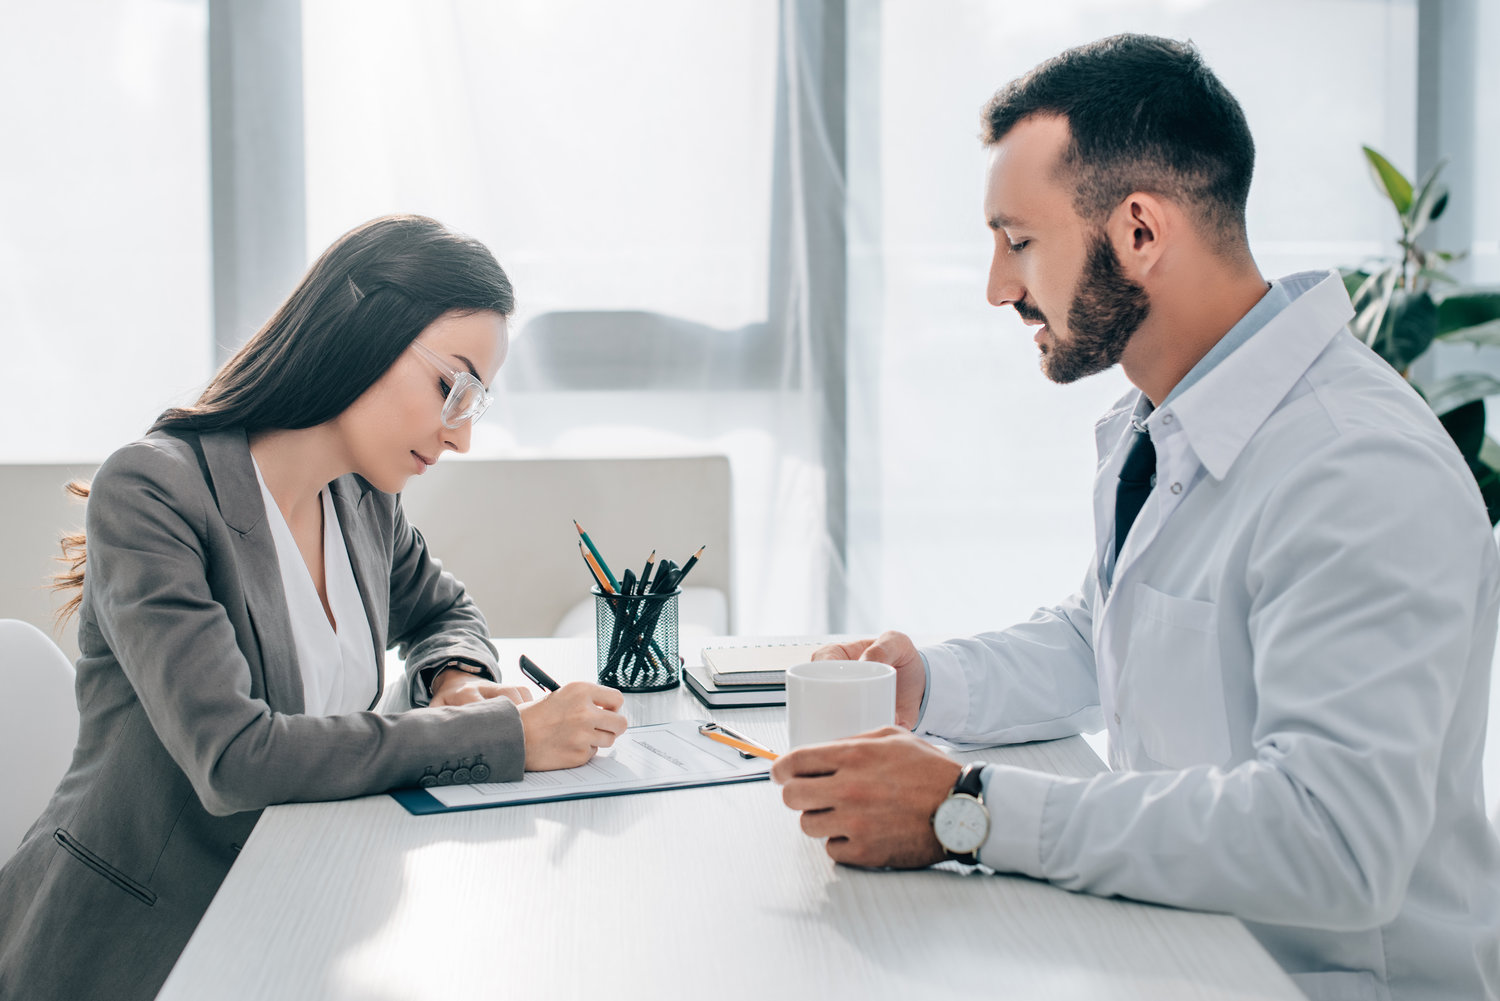 Going Into Health Care Administration? Consider These Things Before